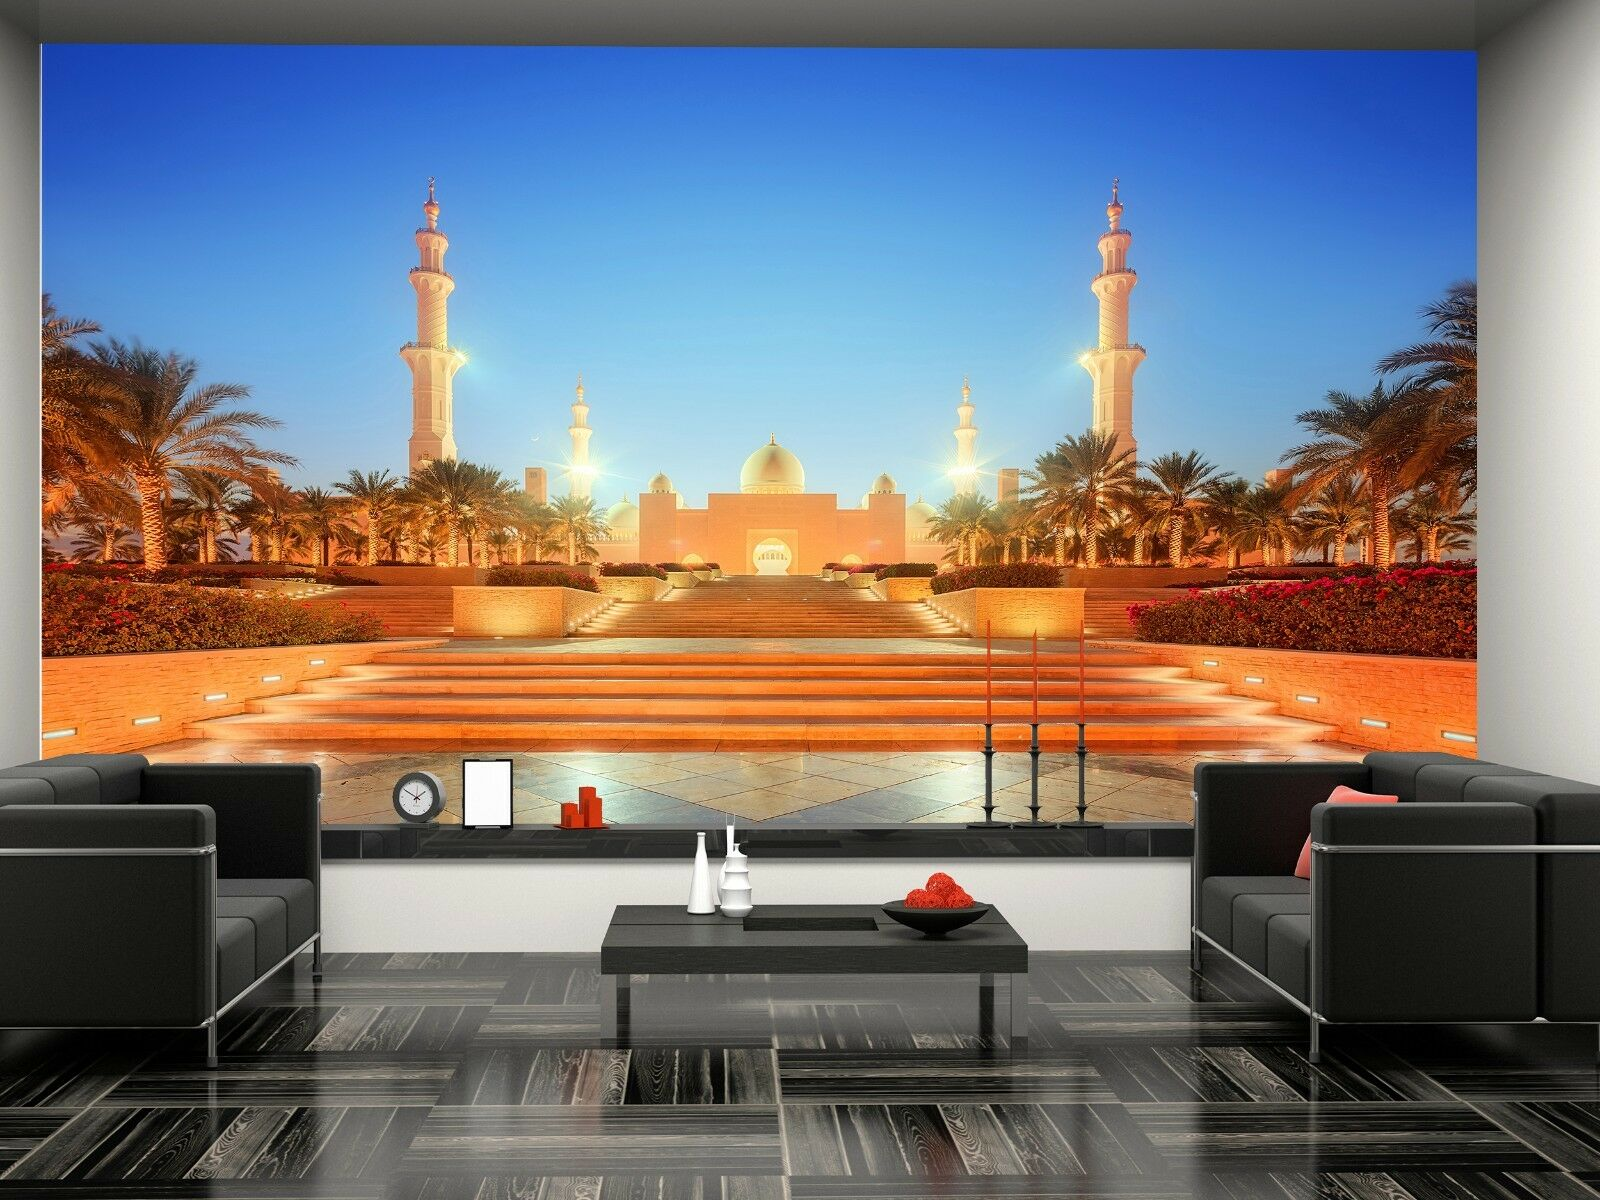 Grand Mosque,Abu-Dhabi Wall Mural Photo Wallpaper GIANT DECOR Paper Poster